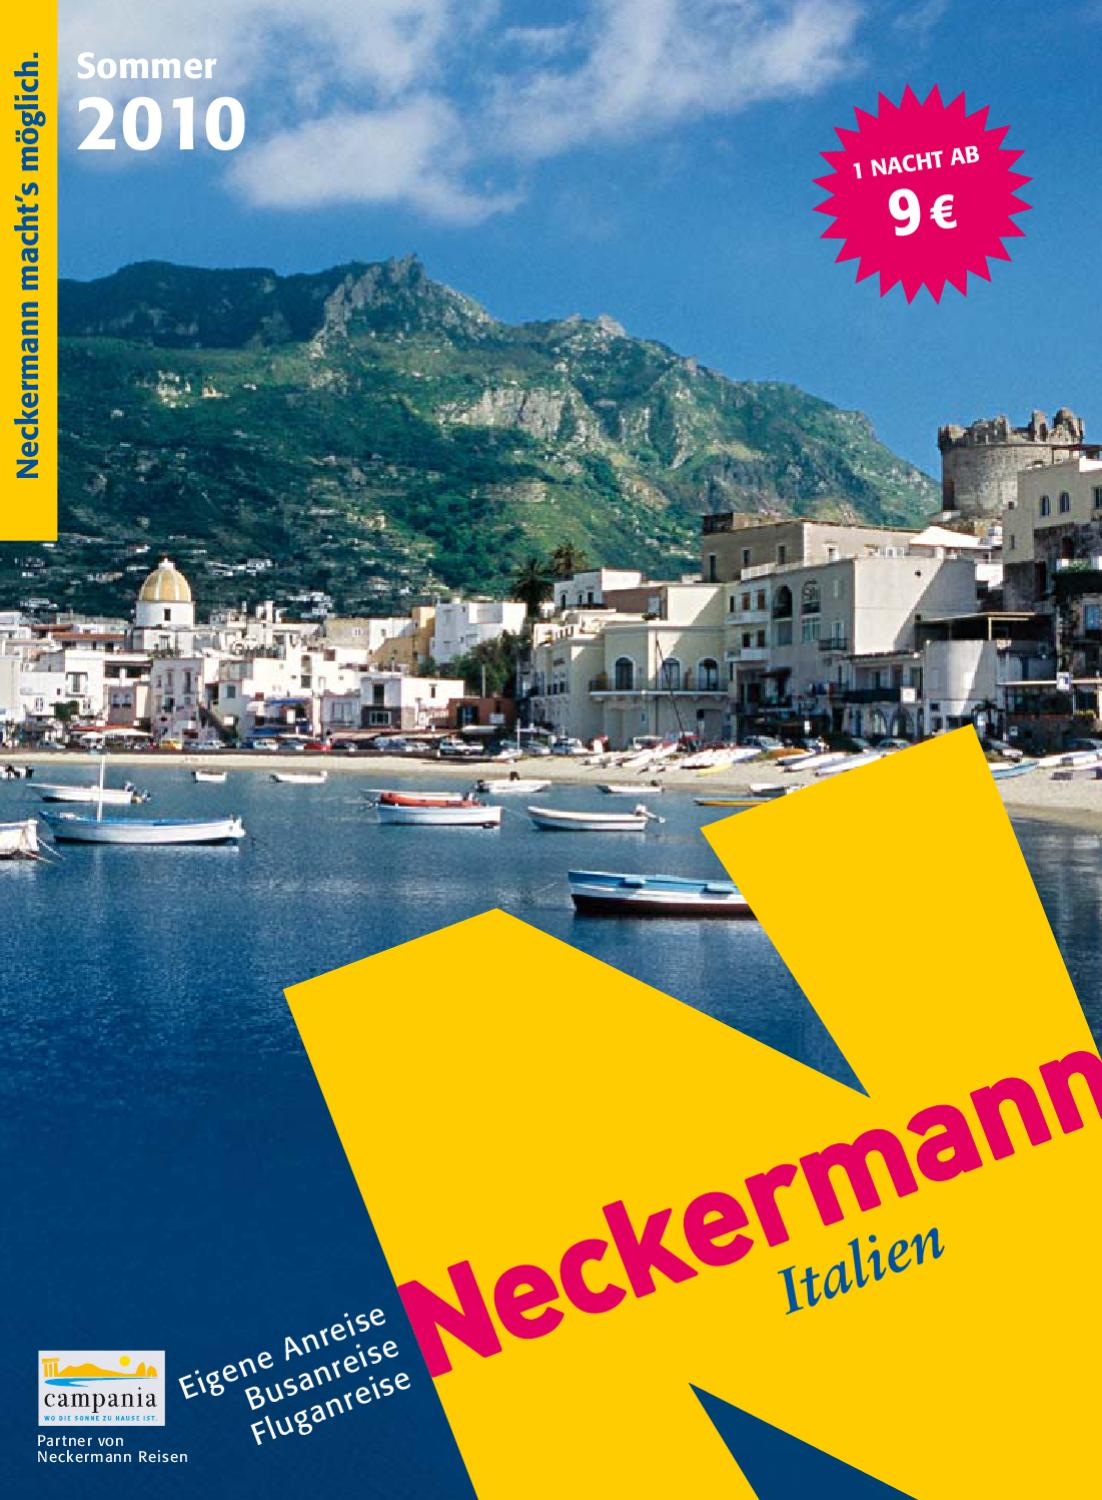 Schrankbett Neckermann Neckermann Italien So10 By Wulf Seidel Issuu